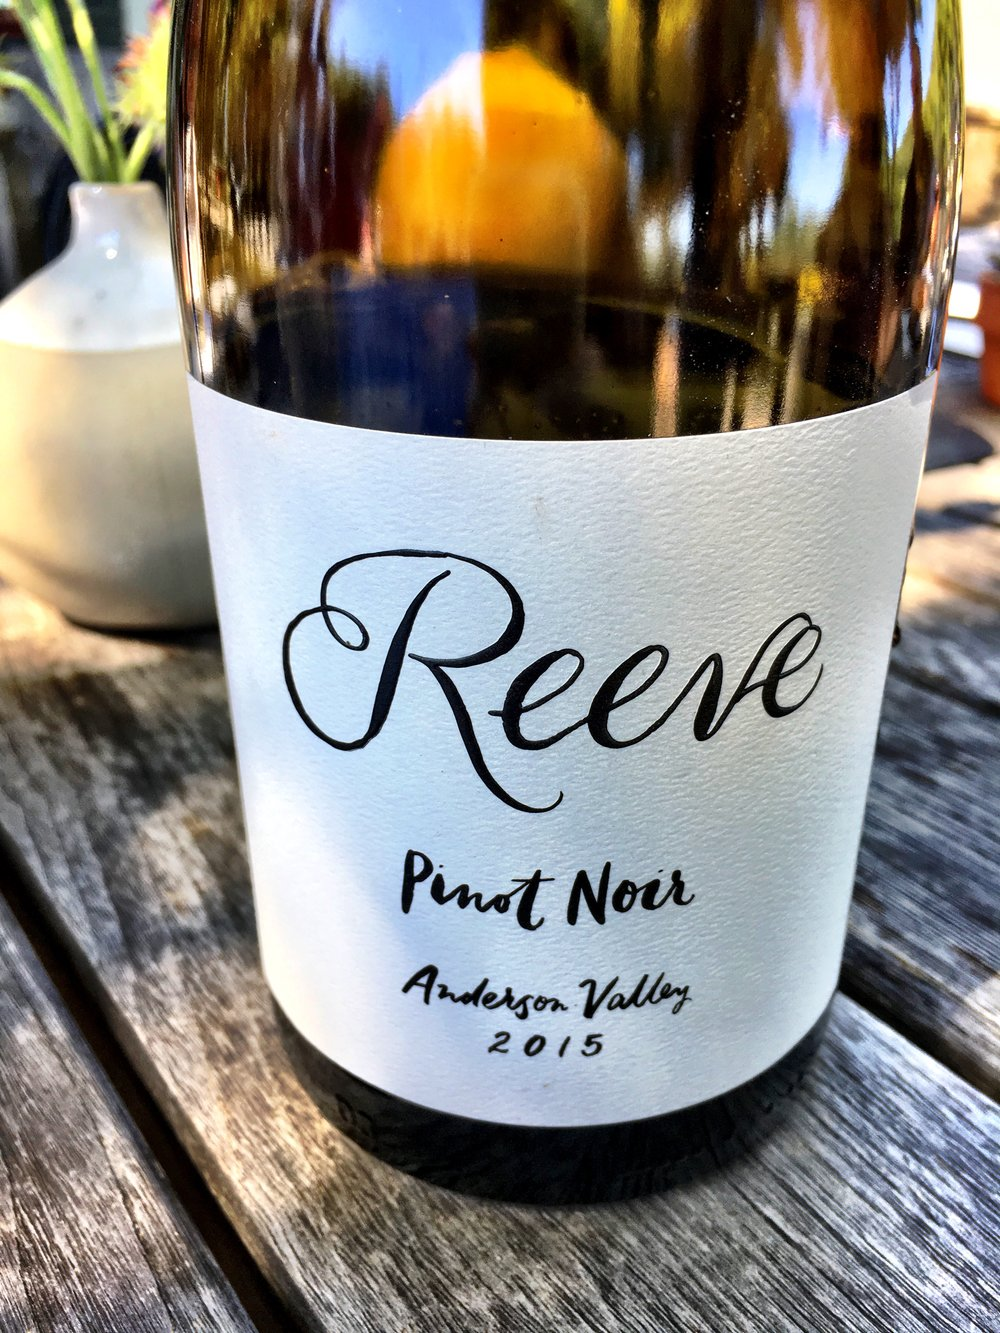 2015 Pinot Noir at Reeve Wines